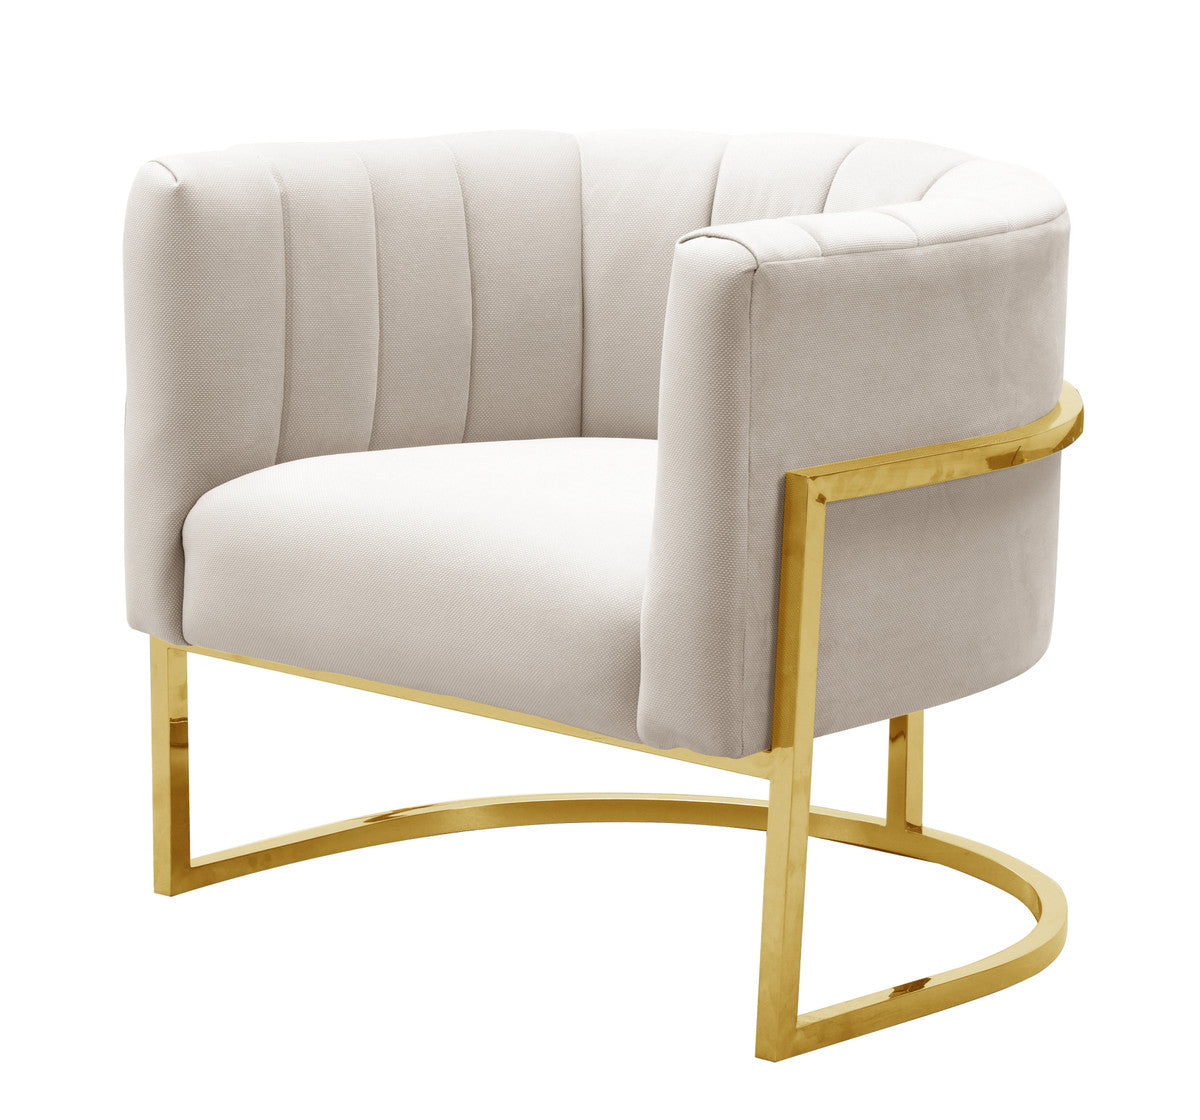 MAGNOLIA CREAM CHAIR WHITH GOLD BASE.